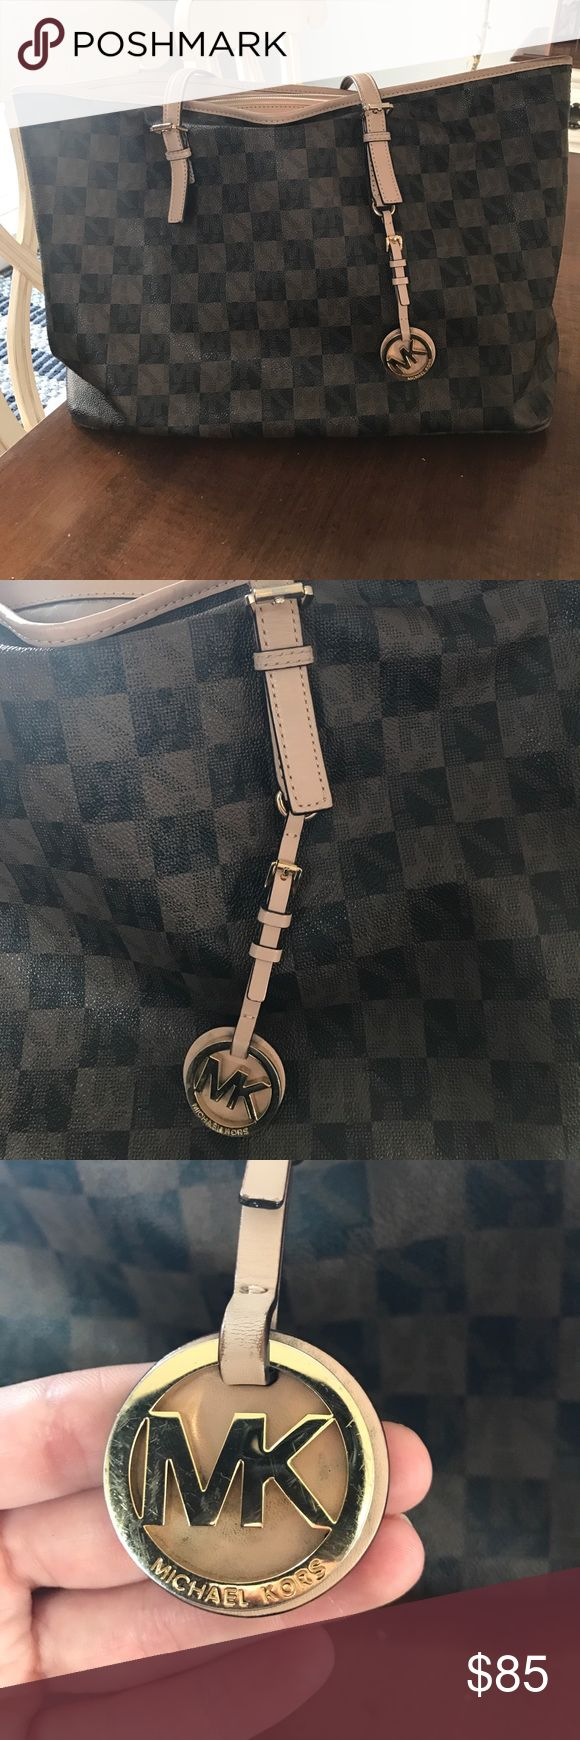 Michael Kors checkered bag Authentic Mk brown checkered bag (similar to lv neverfull) one stain on inside bag. Stain on mk hanging chain as pictured. Leather is aging on handles and around top rim of bag. Michael Kors Bags Shoulder Bags